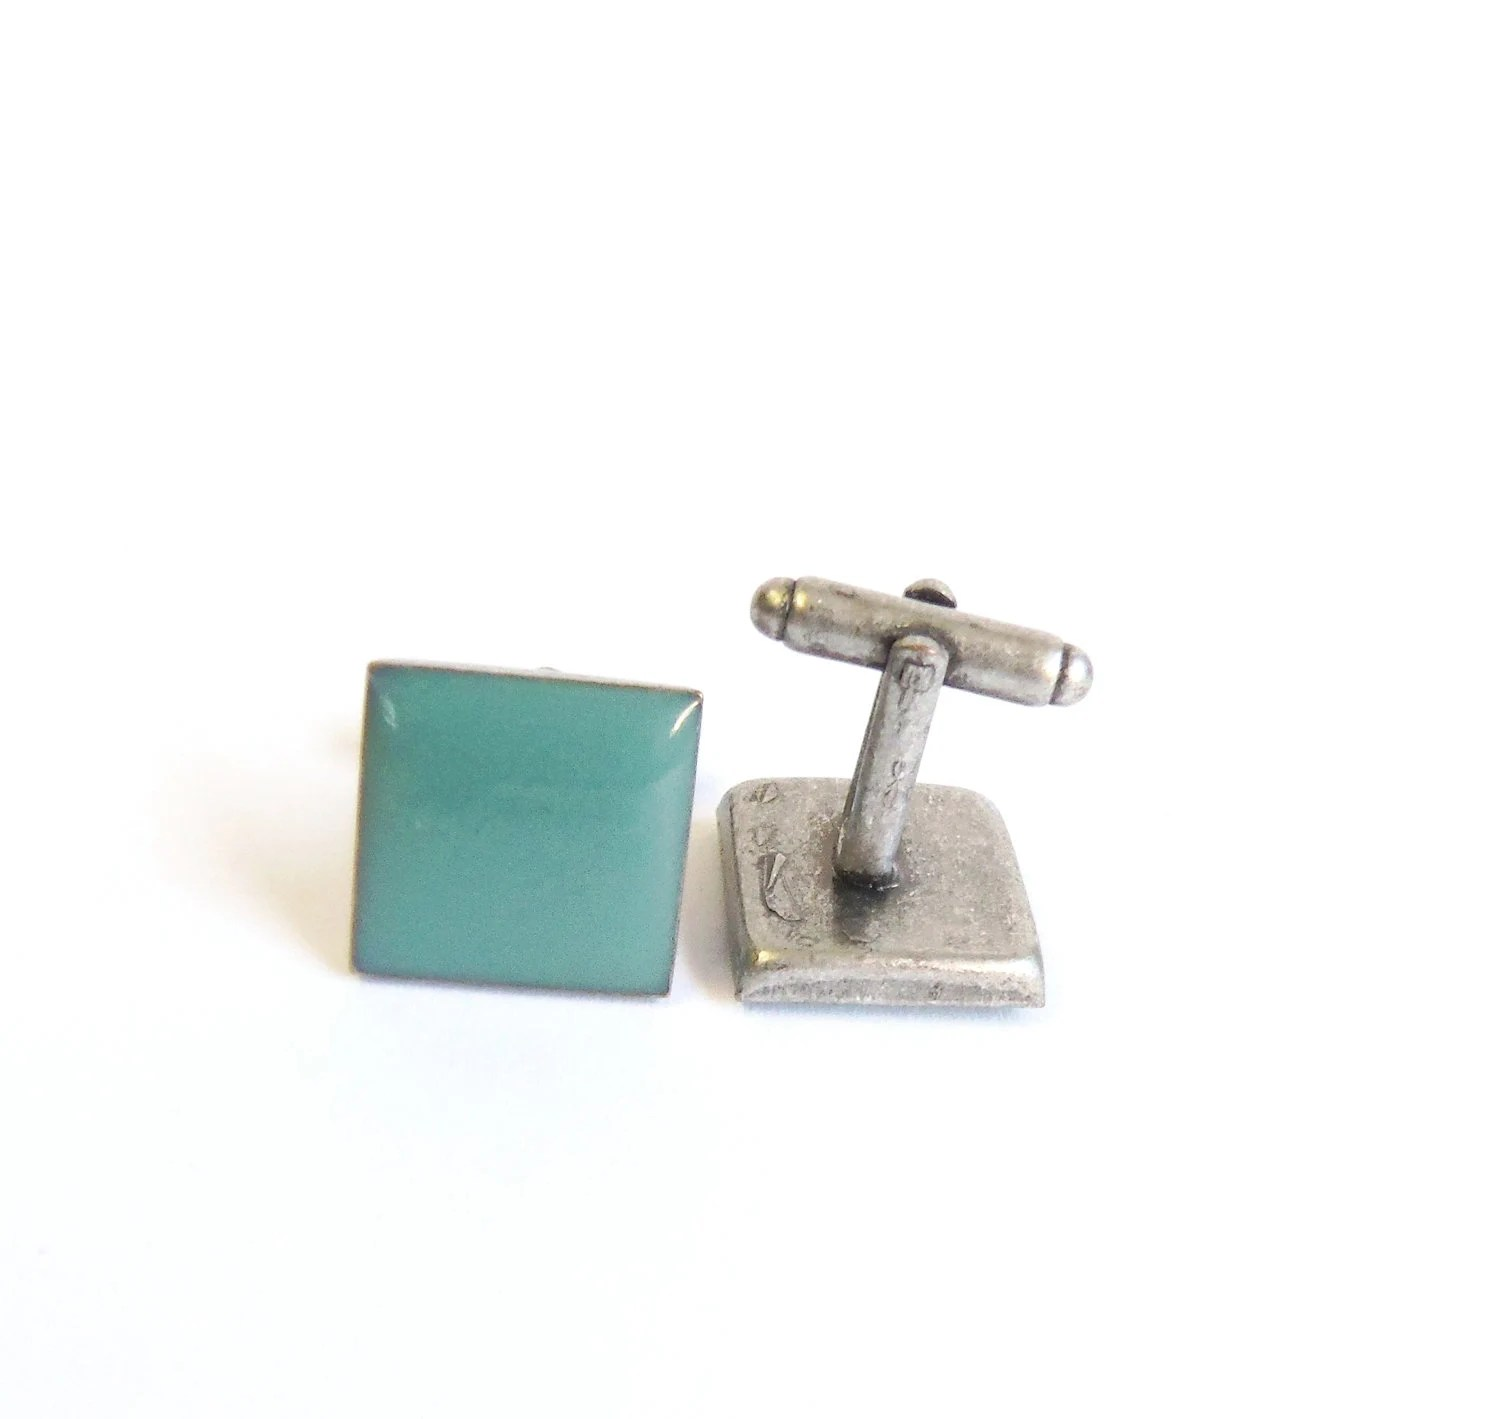 Mint green cufflinks silver plated cufflinks unique gifts - agatechristina